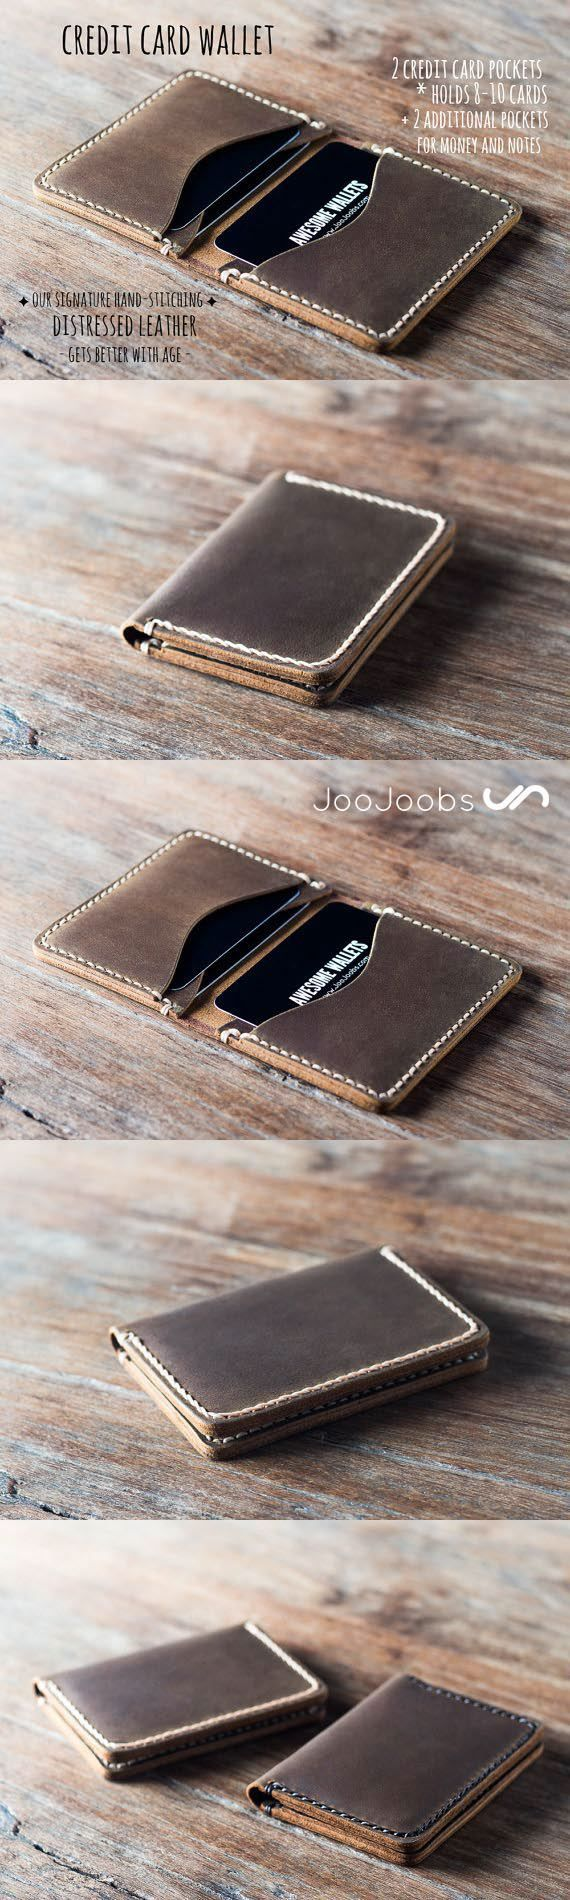 This awesome handmade leather credit card wallet is made from full grain distressed leather. You are guaranteed to love this wallet as it will draw many compliments and last a lifetime. #JooJoobs #Quality #Craftmanship